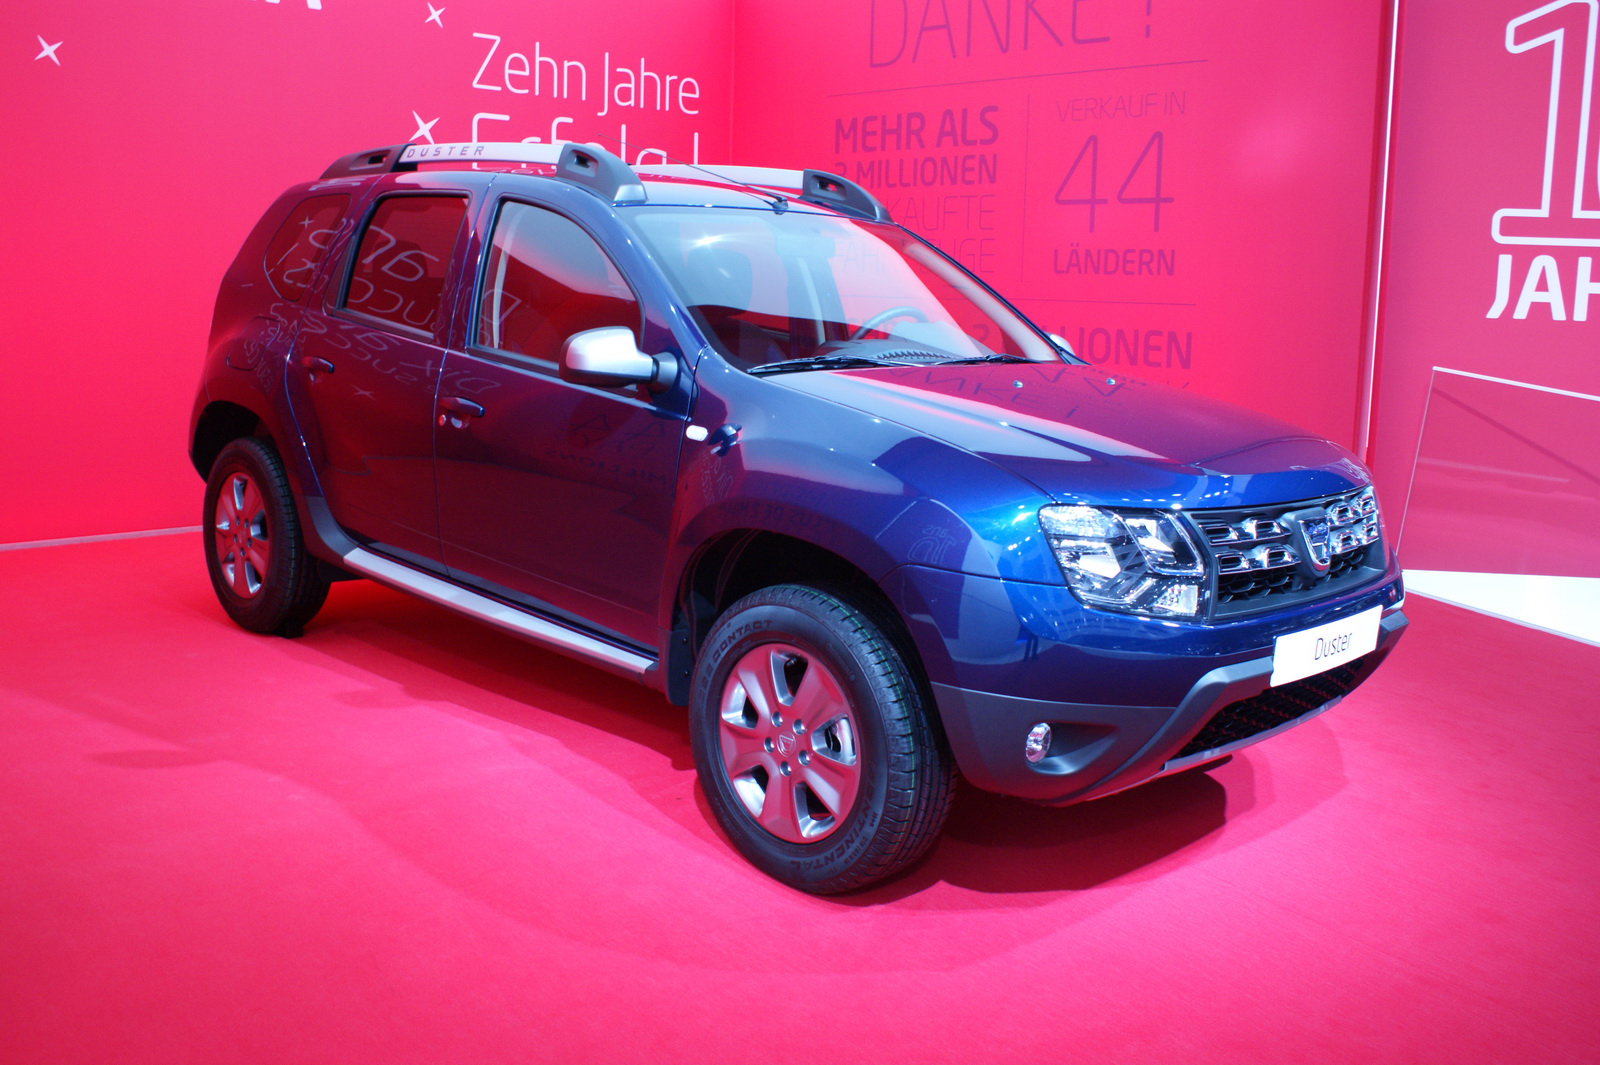 2018 Dacia Lodgy photo - 4